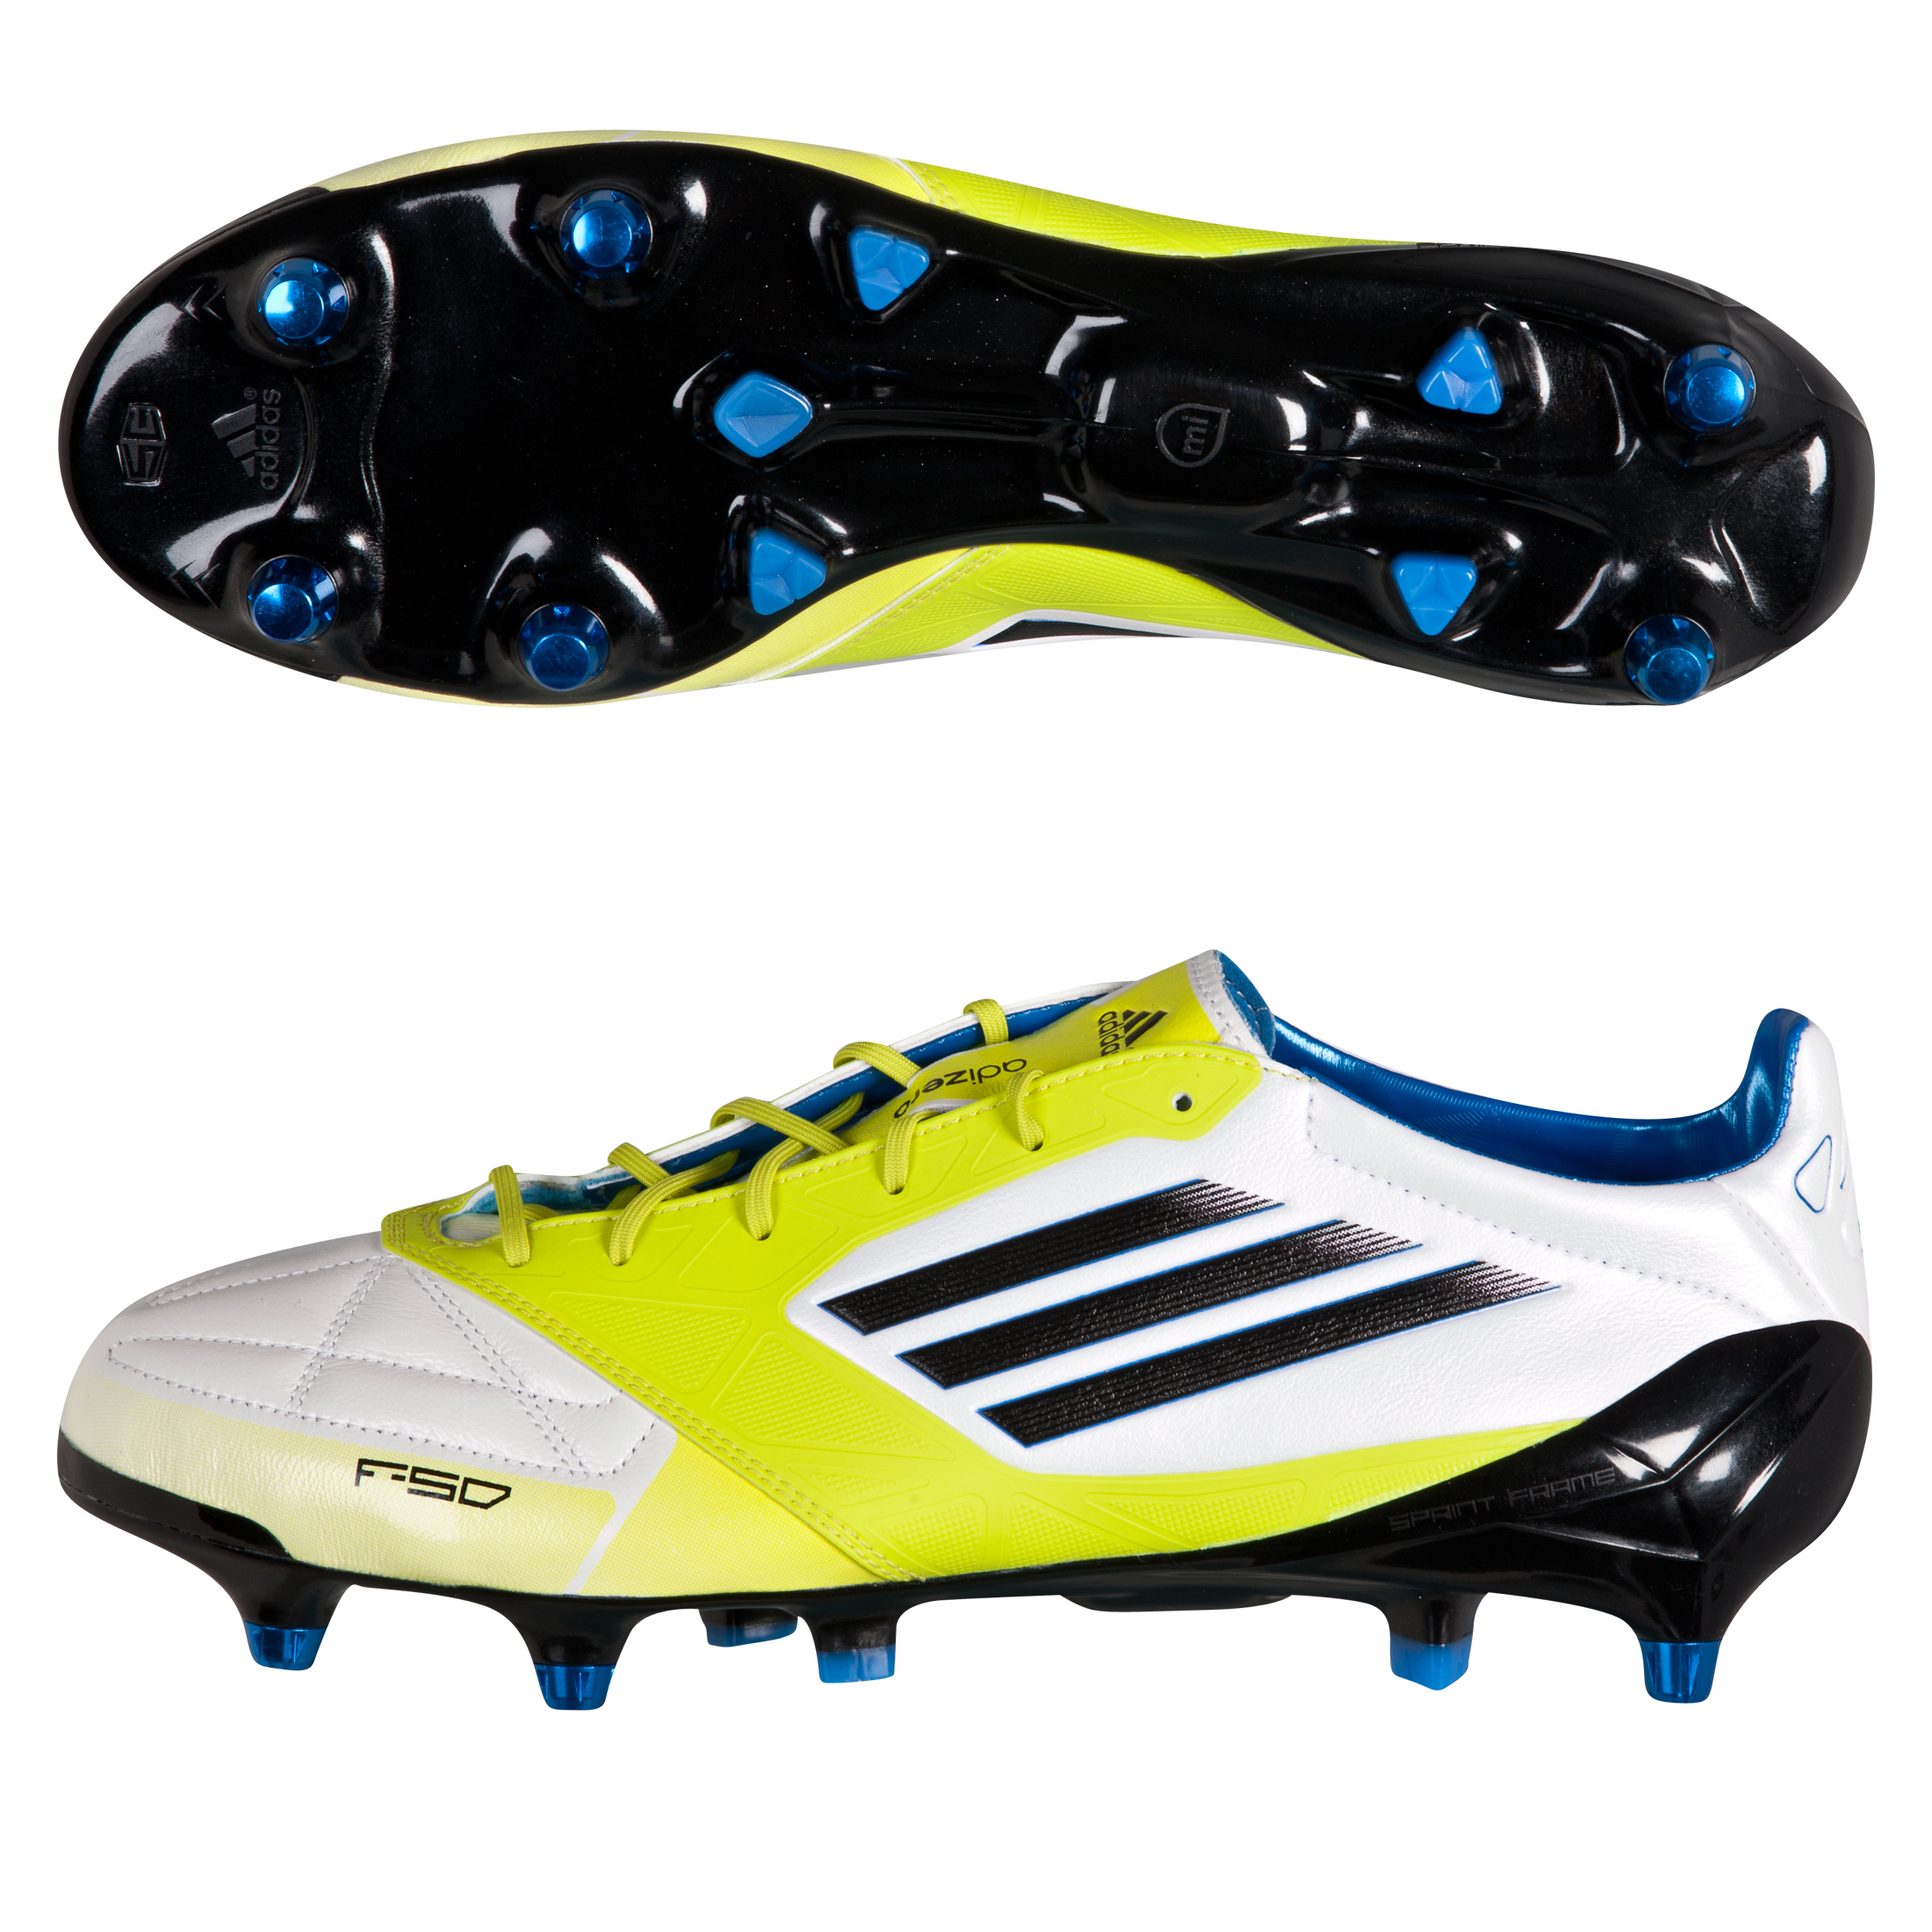 Adidas F50 Adizero XTRX Soft Ground Leather Football Boots - White/Black/Lab Lime